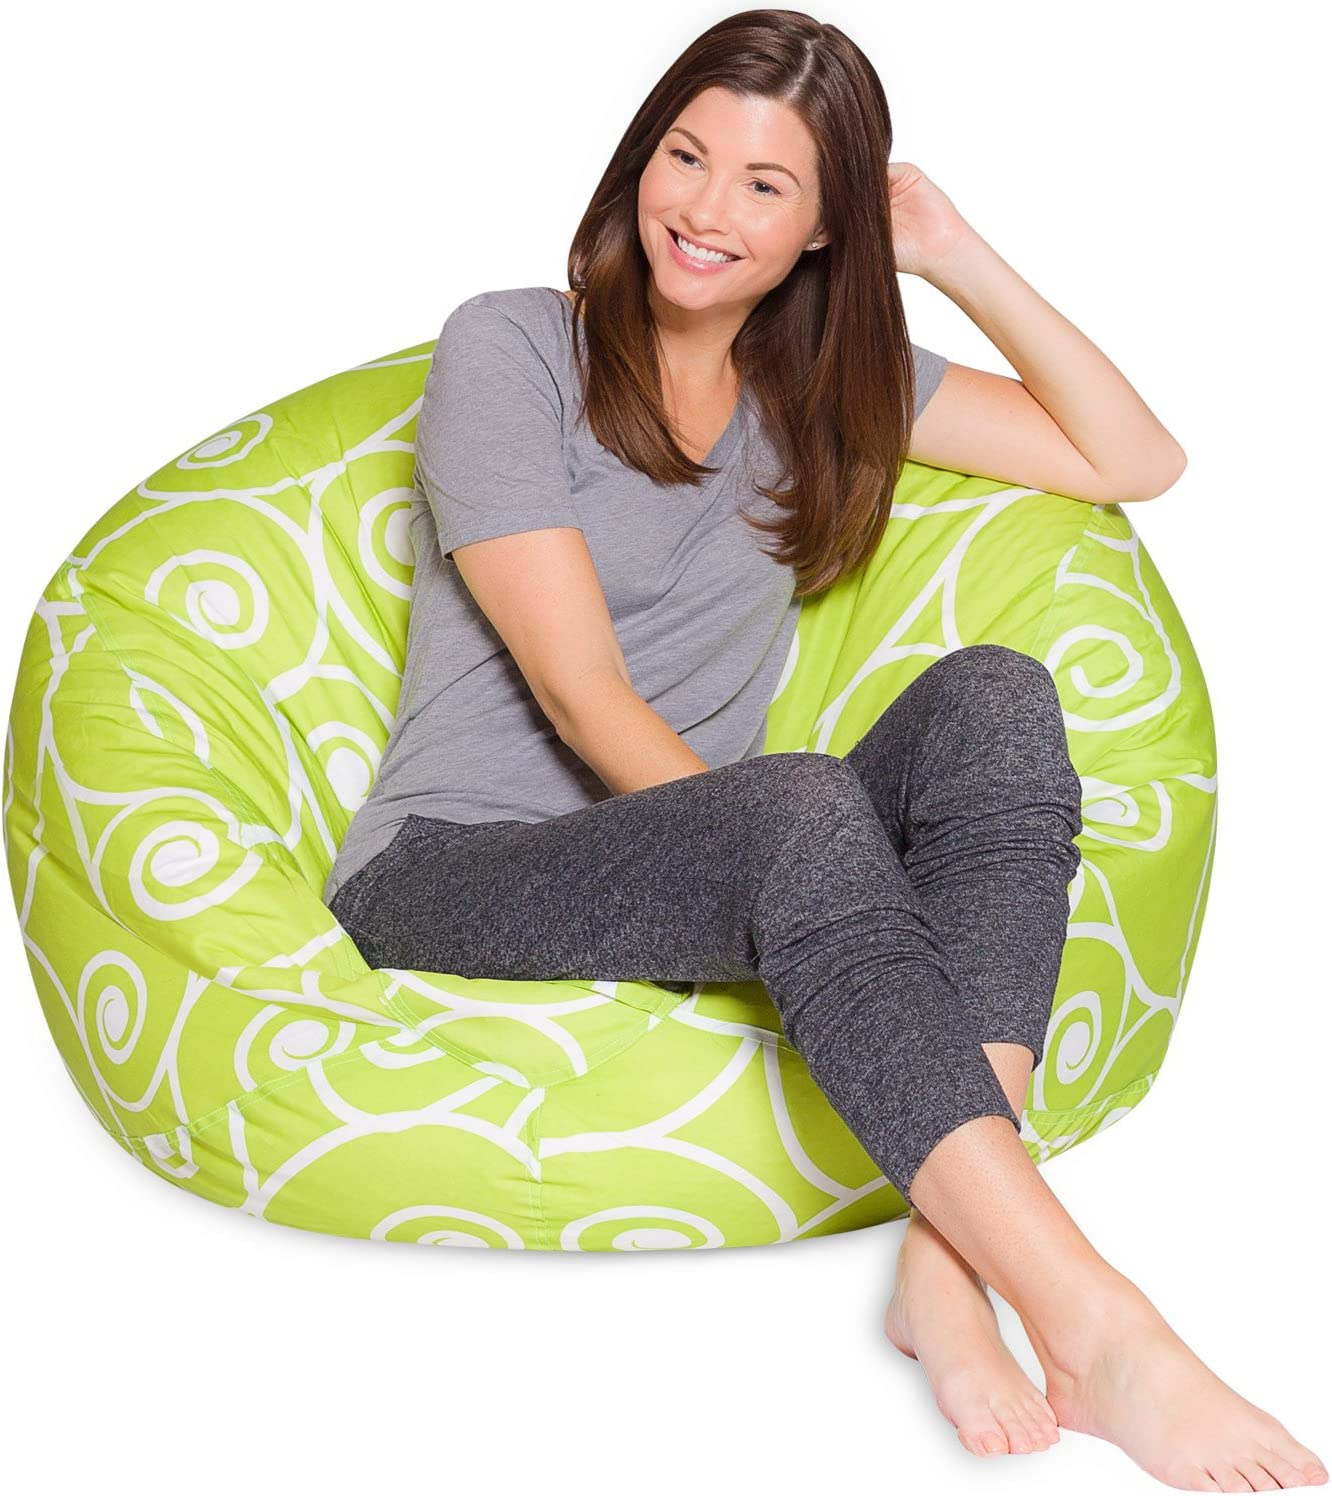 Posh Beanbags Big Comfy Bean Bag Posh Large Beanbag Chairs with Removable Cover for Kids, Teens and Adults Polyester Cloth Puff Sack Lounger Furniture for All Ages, 48in Extra, Swirls Lime and White